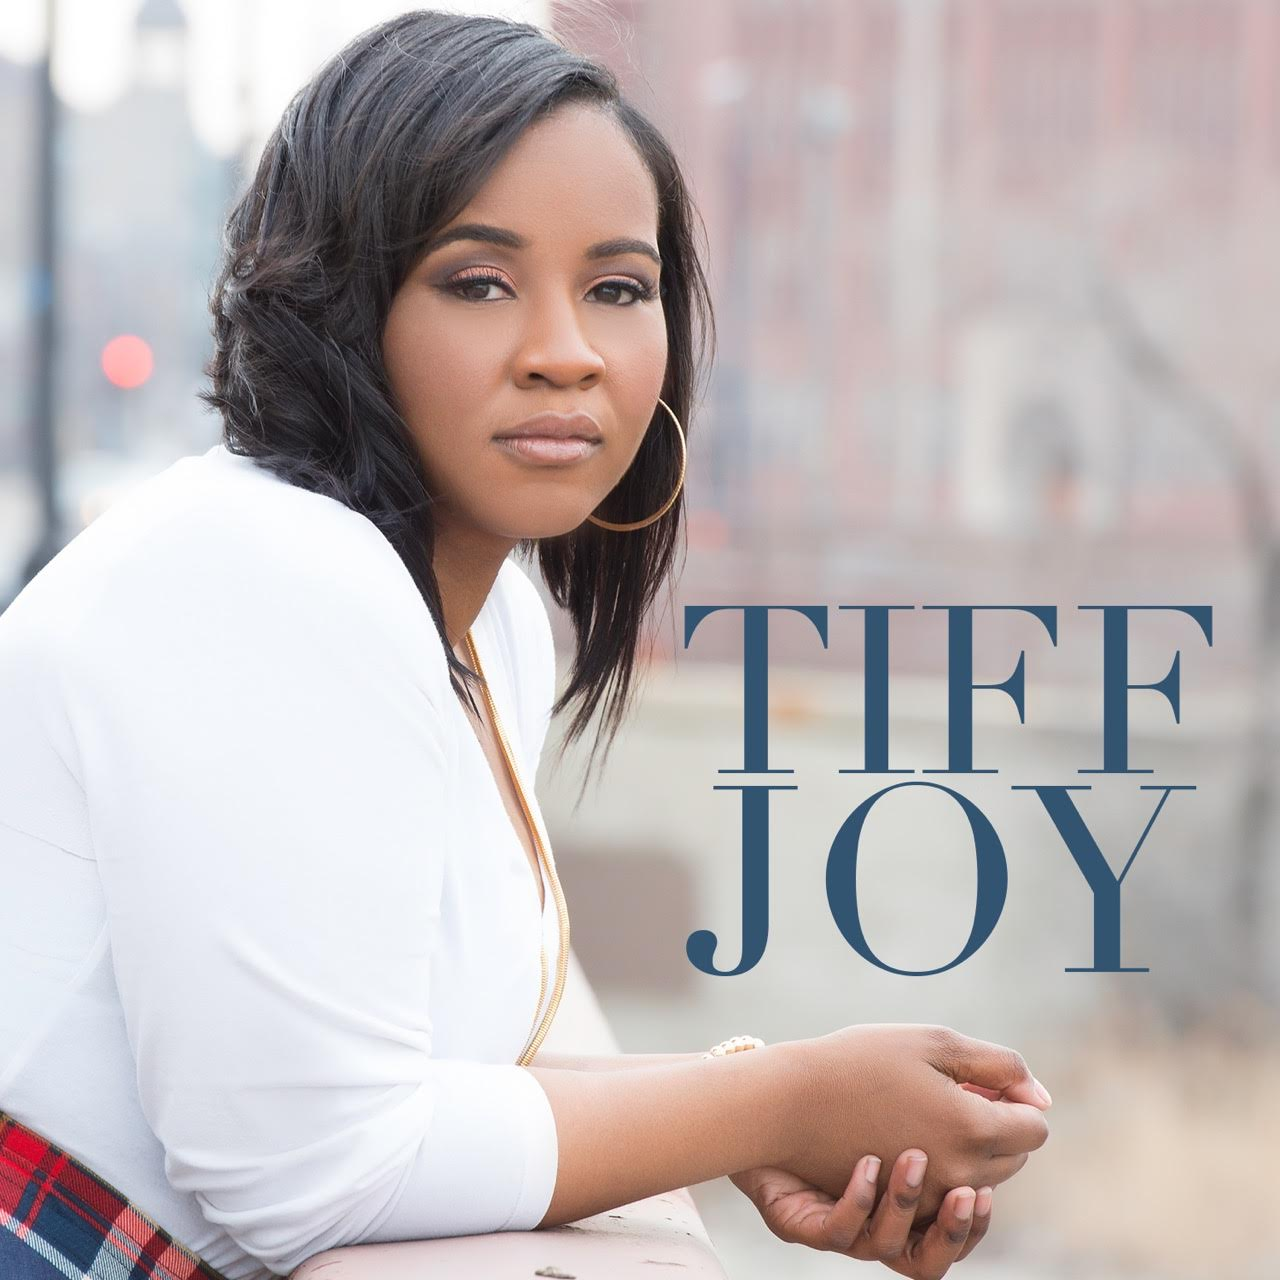 Chicago native stepping center stage withself-titled debut solo album 'TIFF JOY'